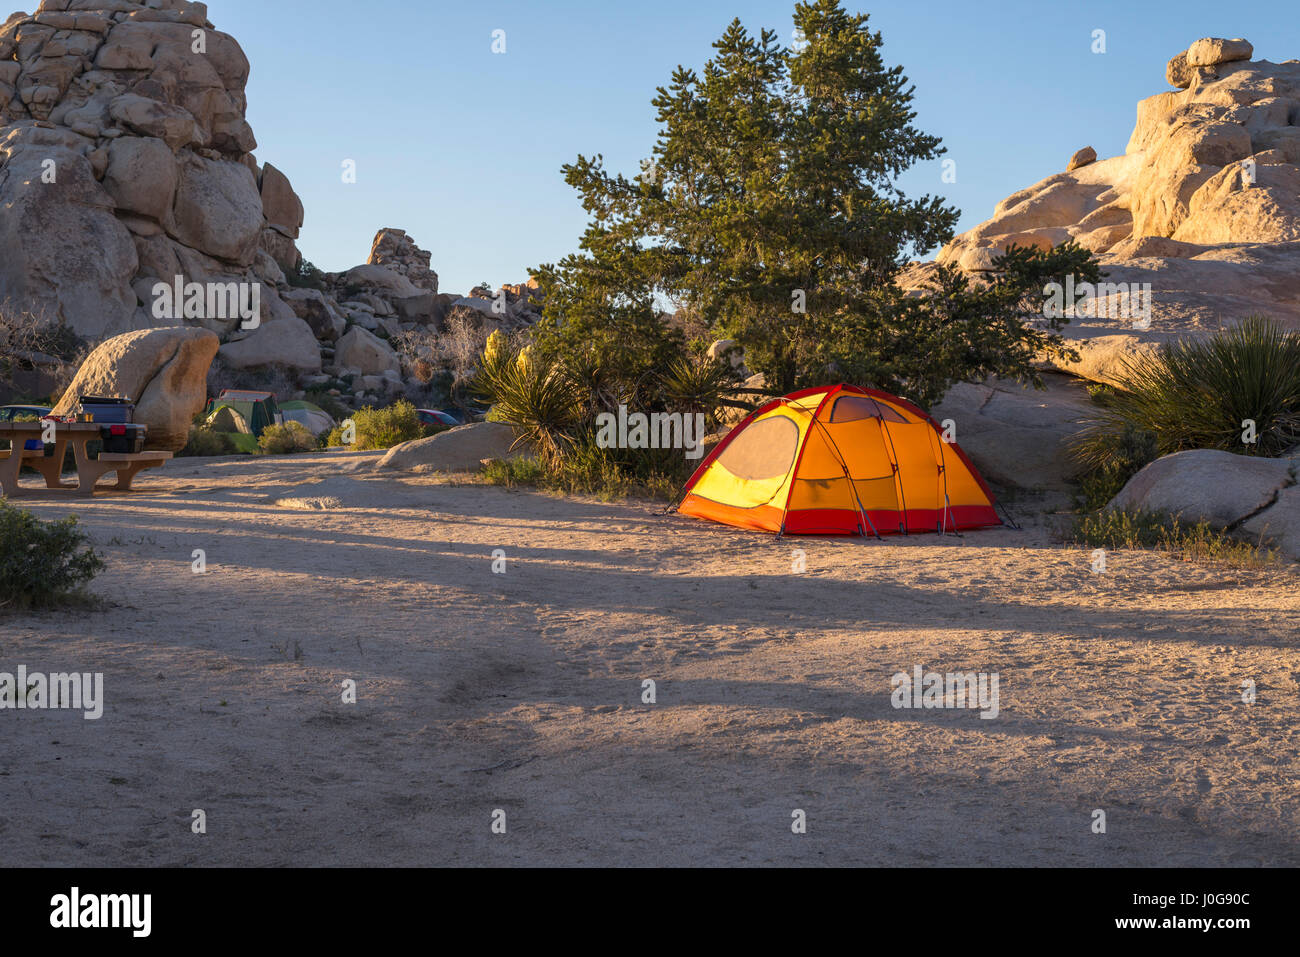 Camping Zelt am Campingplatz Bereich. Joshua Tree Nationalpark, Kalifornien, USA. Stockbild